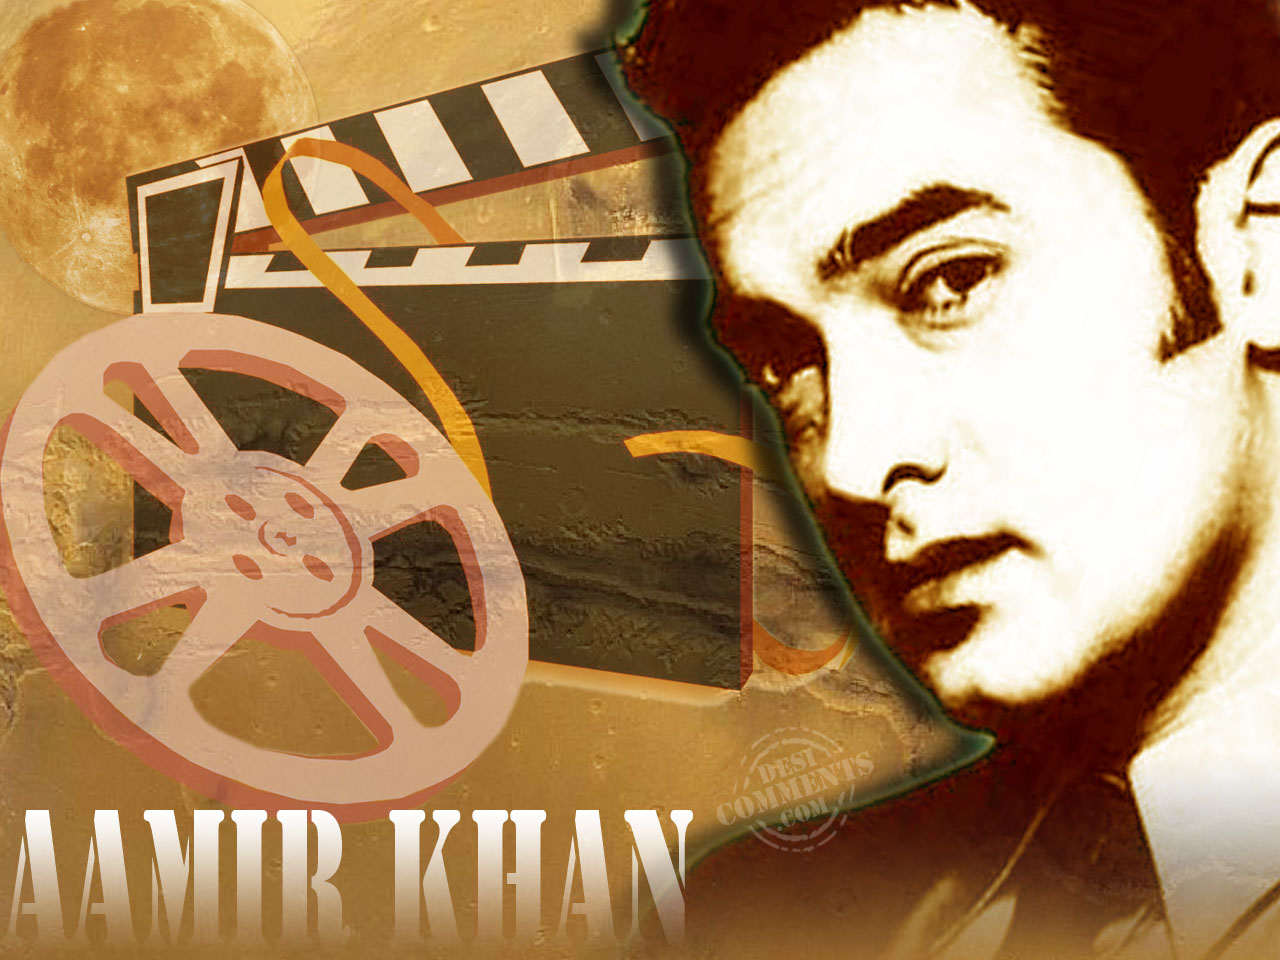 Aamir Khan Wallpapers - Page 2